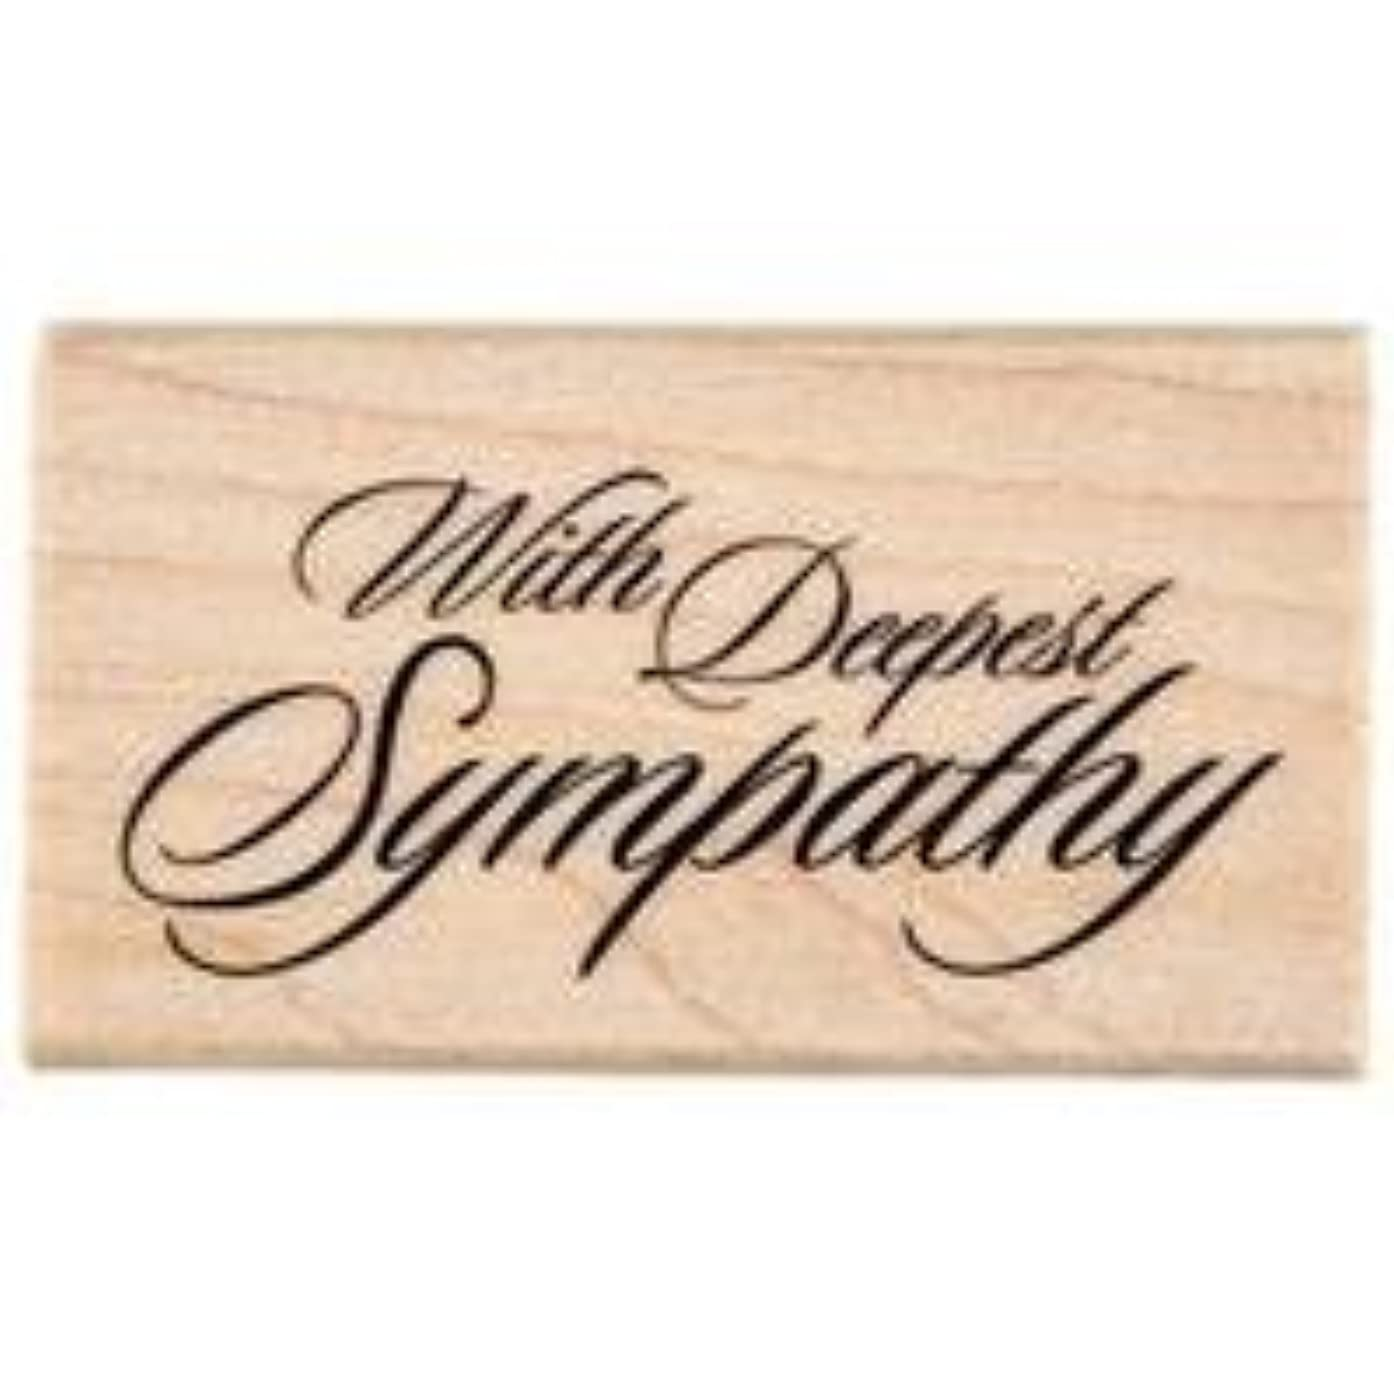 With Deepest Sympathy Rubber StampNew by: CC